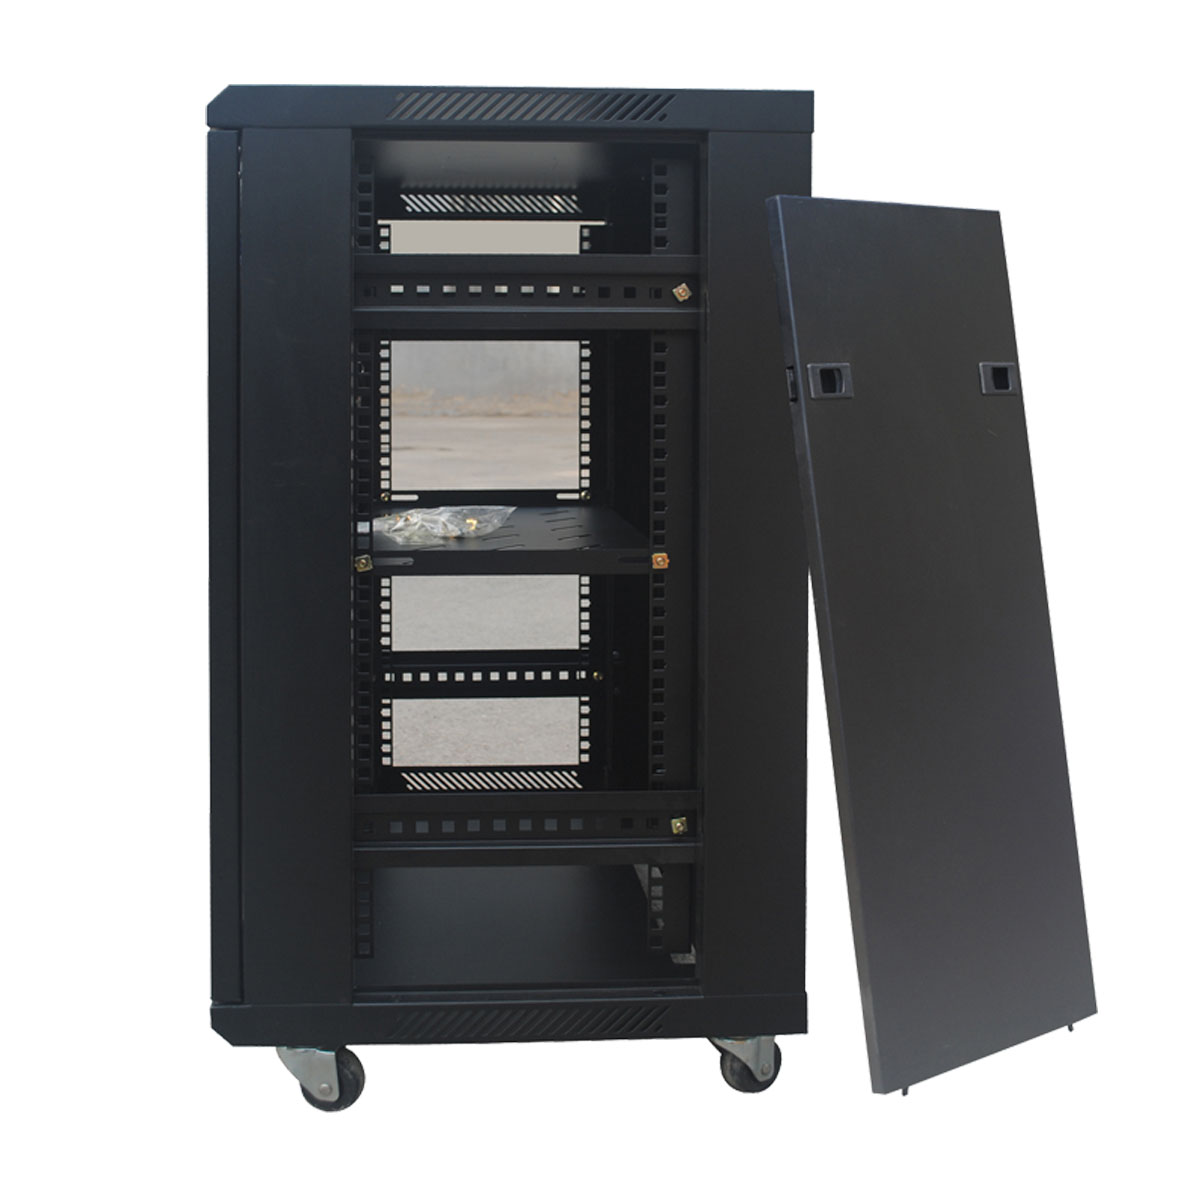 6412 Small Network Cabinet Wall cabinet 12u switch cabinet 0.7 m cabinet with tickets Cheap